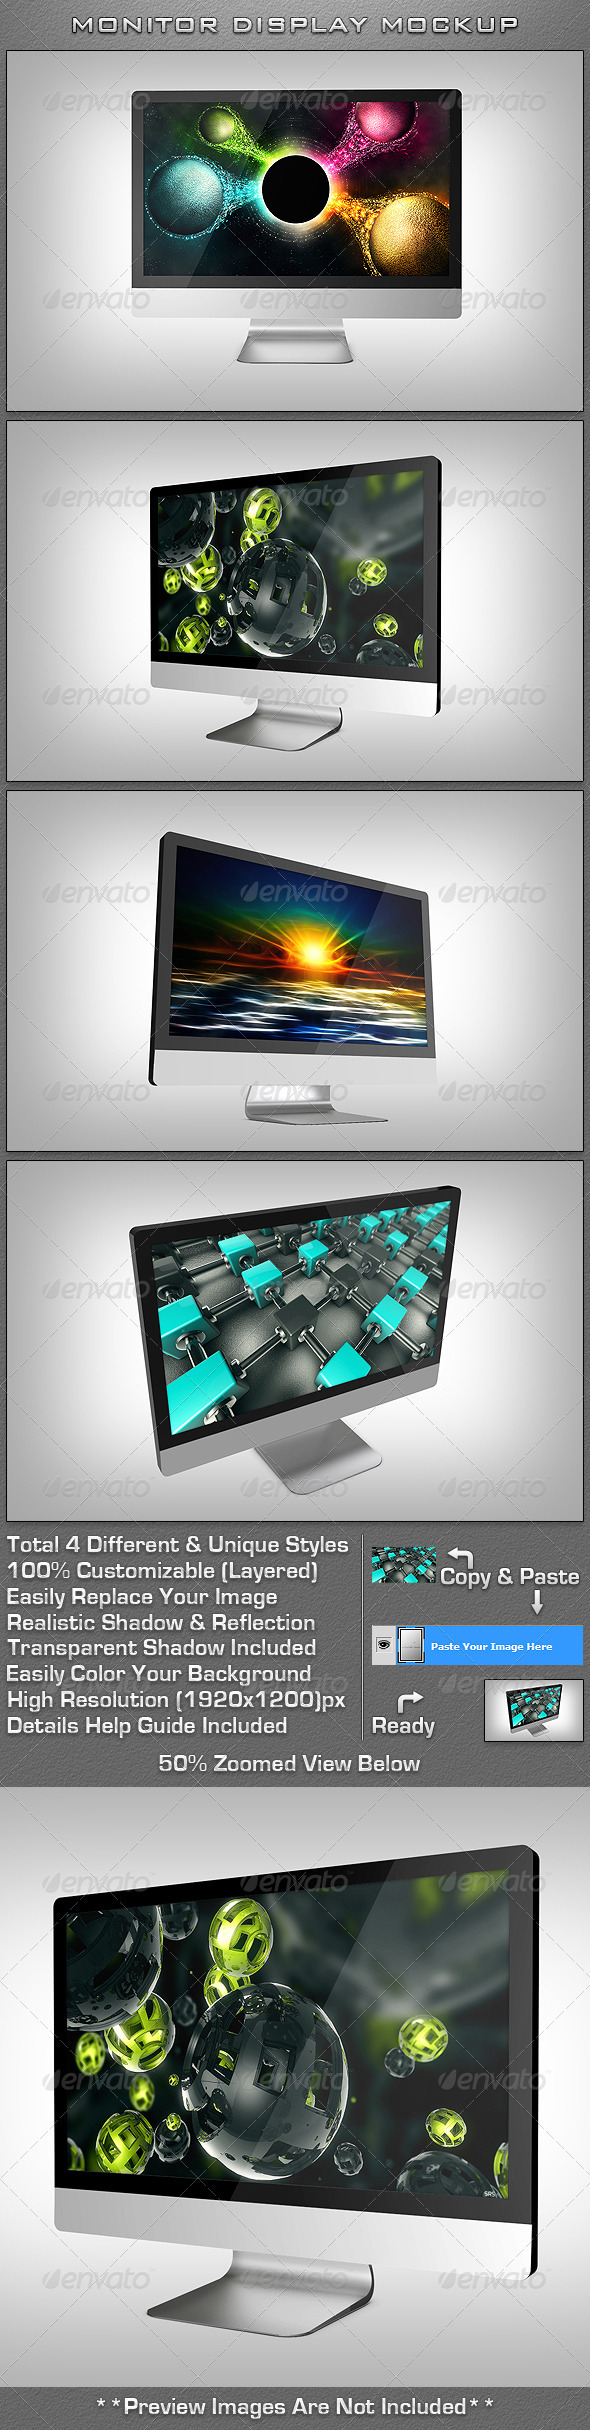 Monitor Display MockUp - Monitors Displays